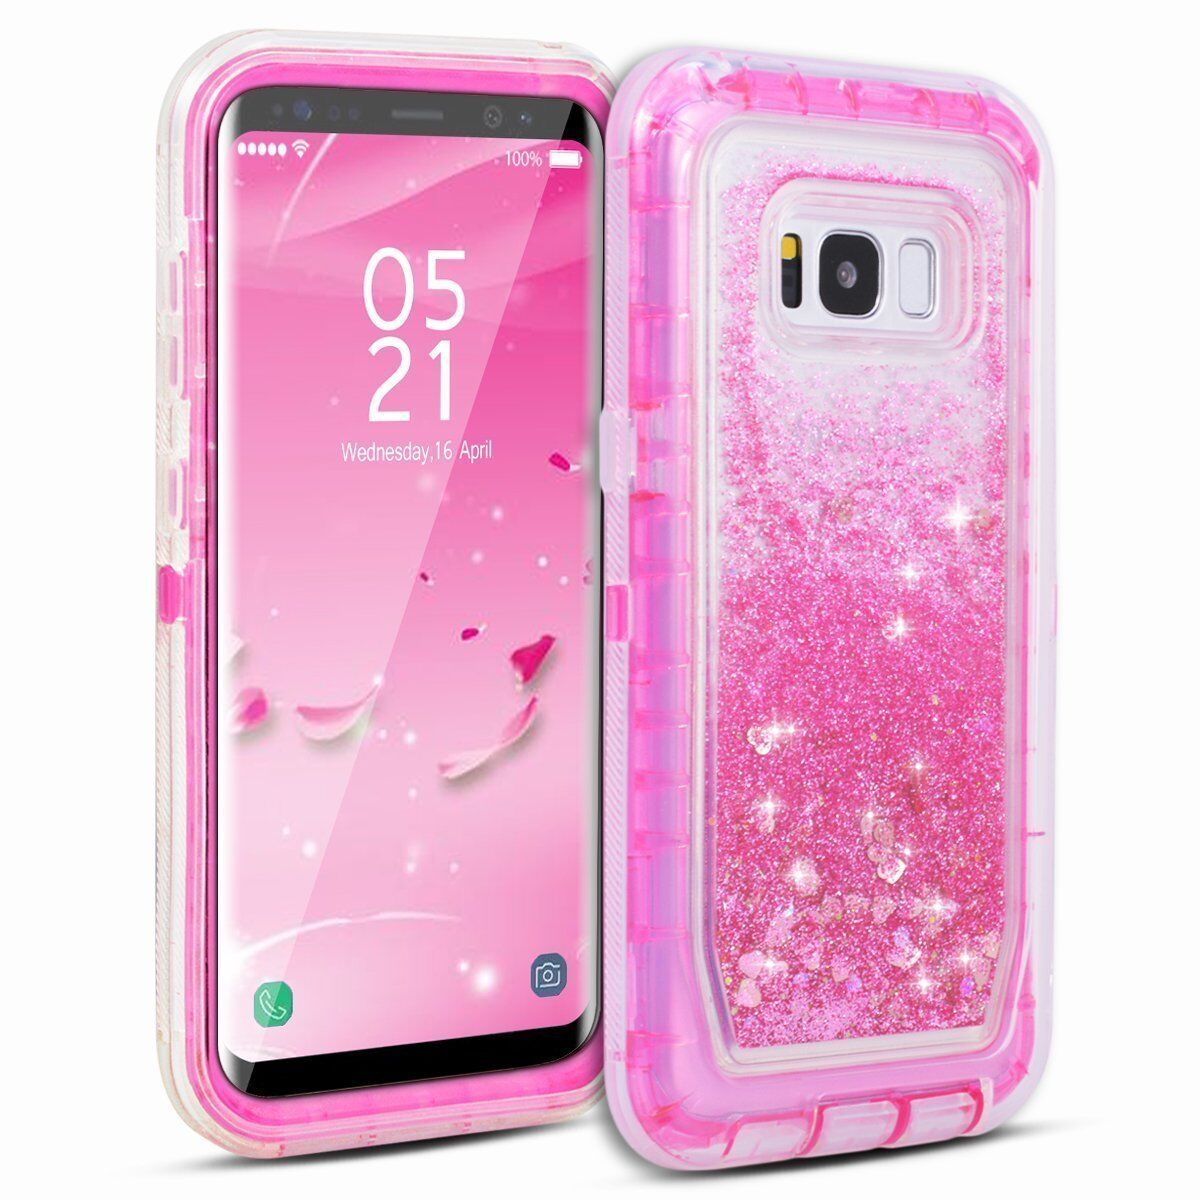 Galaxy S 9 8 7 Plus Edge Note 8 Liquid Glitter Defender Case Clip Fits Otterbox